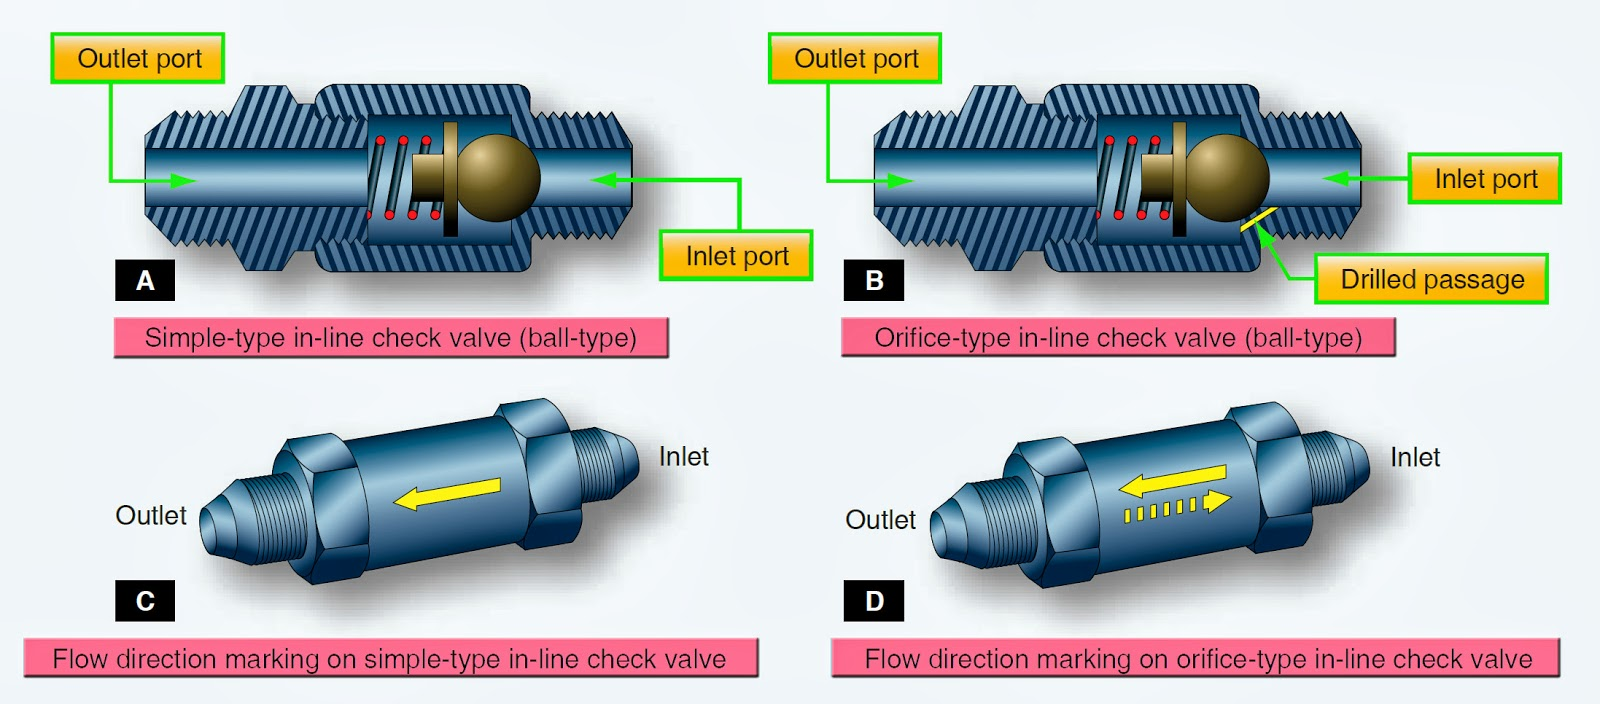 Aeronautical Guide Hydraulic System Valves Simple Engine Diagram Valve Get Free Image About Wiring Aircraft